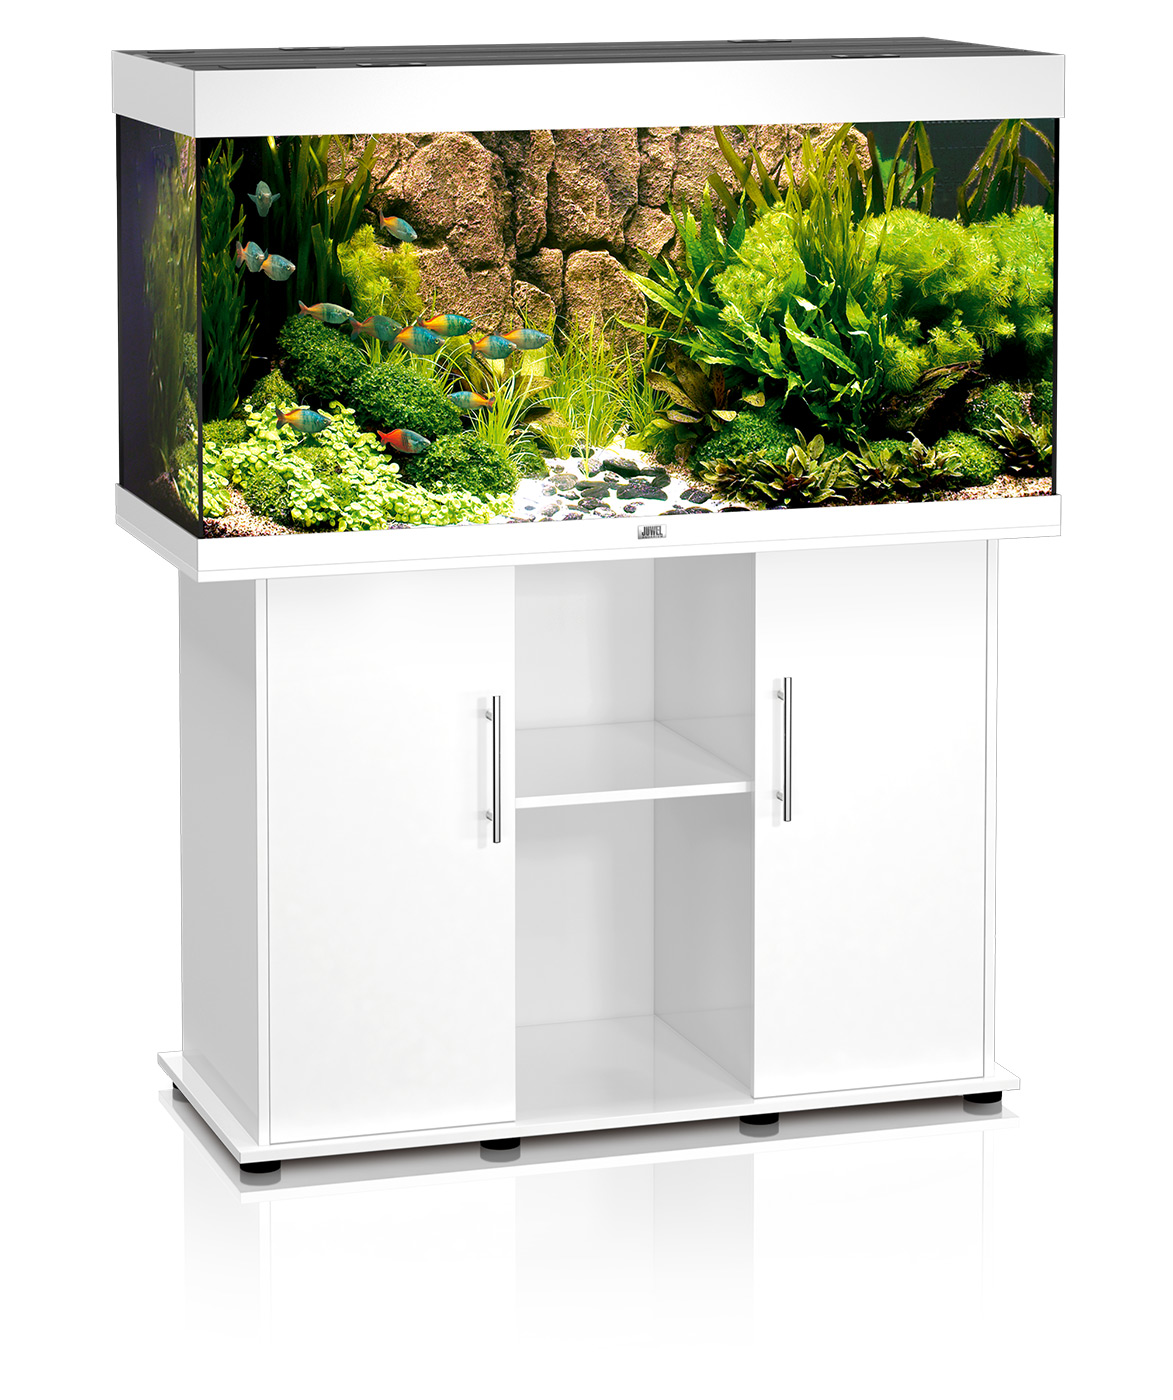 juwel rio 300 aquarium and cabinet. Black Bedroom Furniture Sets. Home Design Ideas